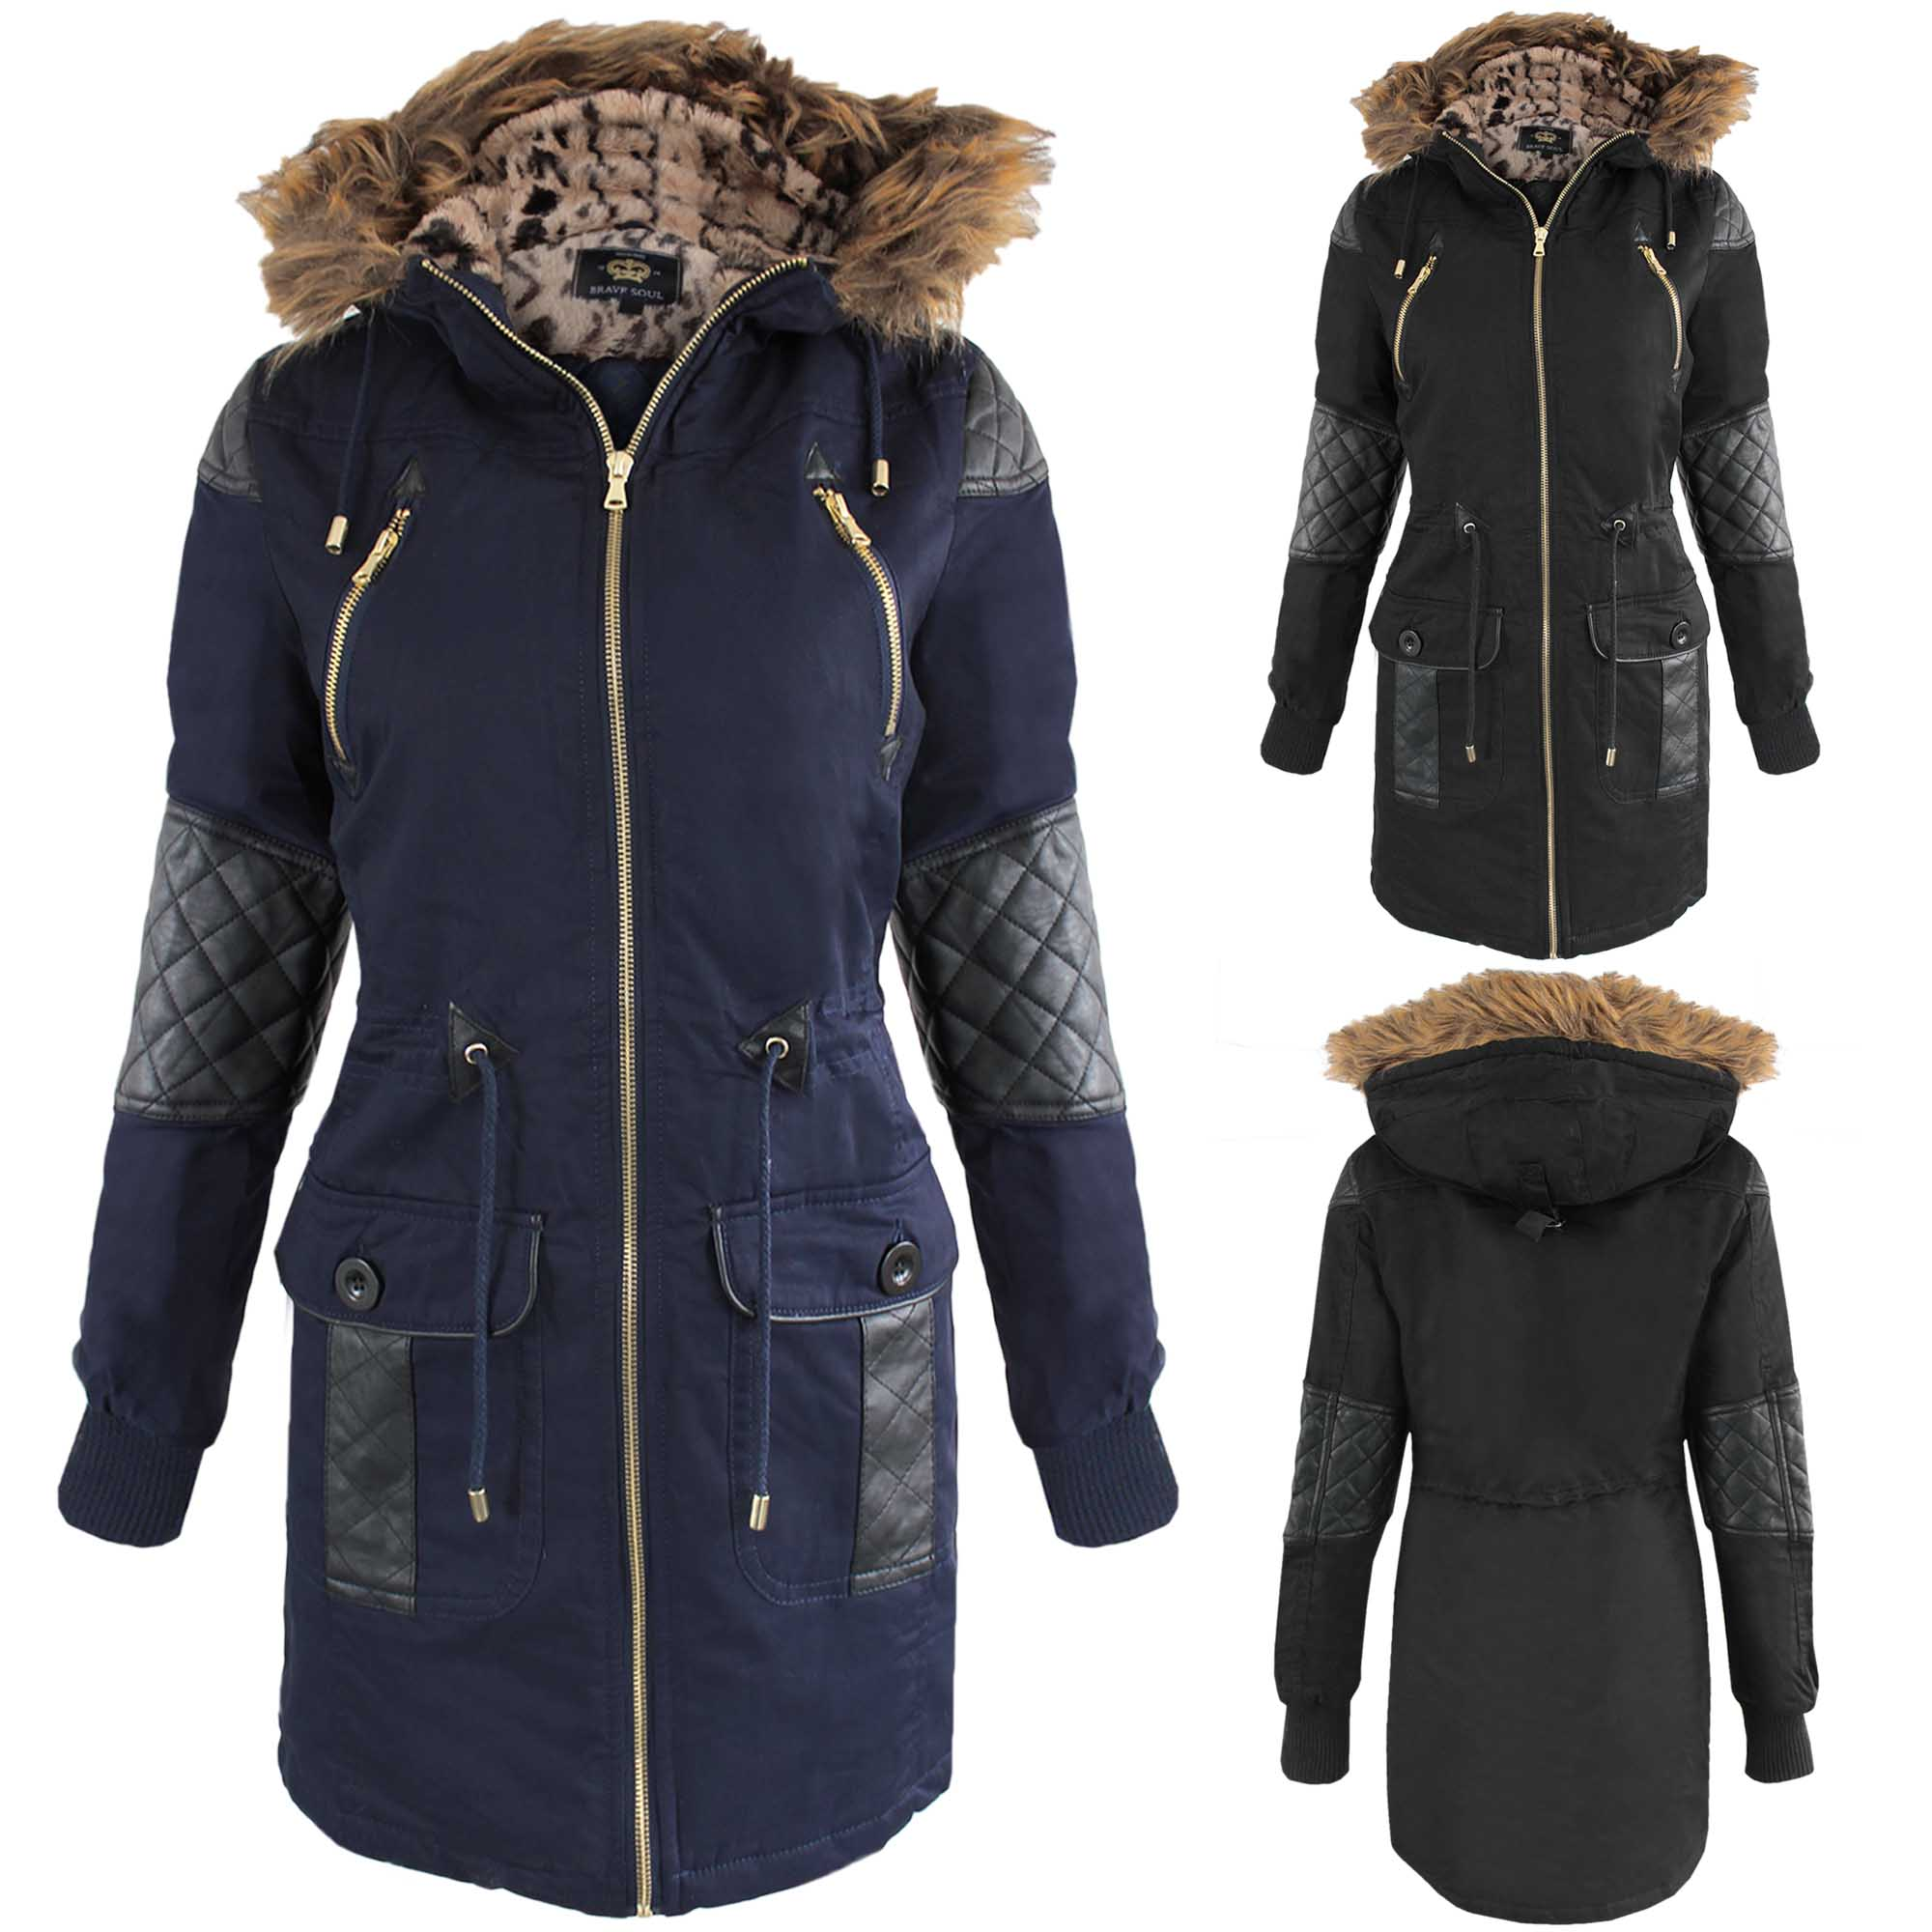 Images of Jacket With Fur Hood Womens - Reikian